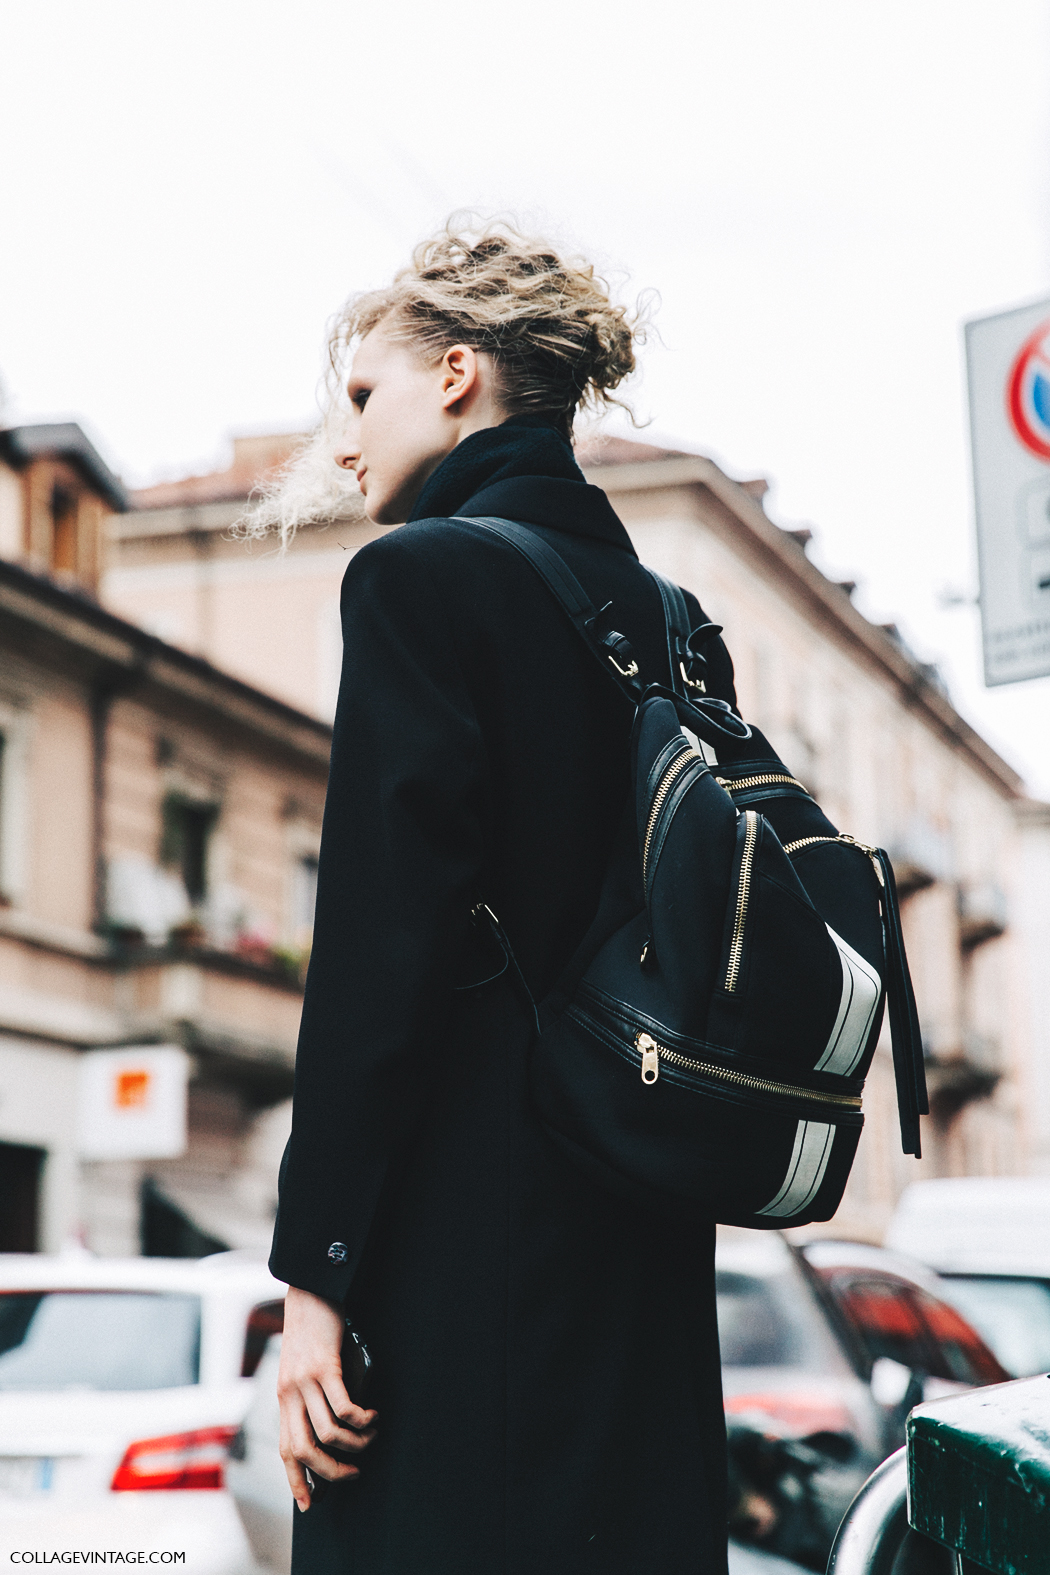 Milan_Fashion_Week_Fall_16-MFW-Street_Style-Collage_Vintage-Armani-Model-Backpack-